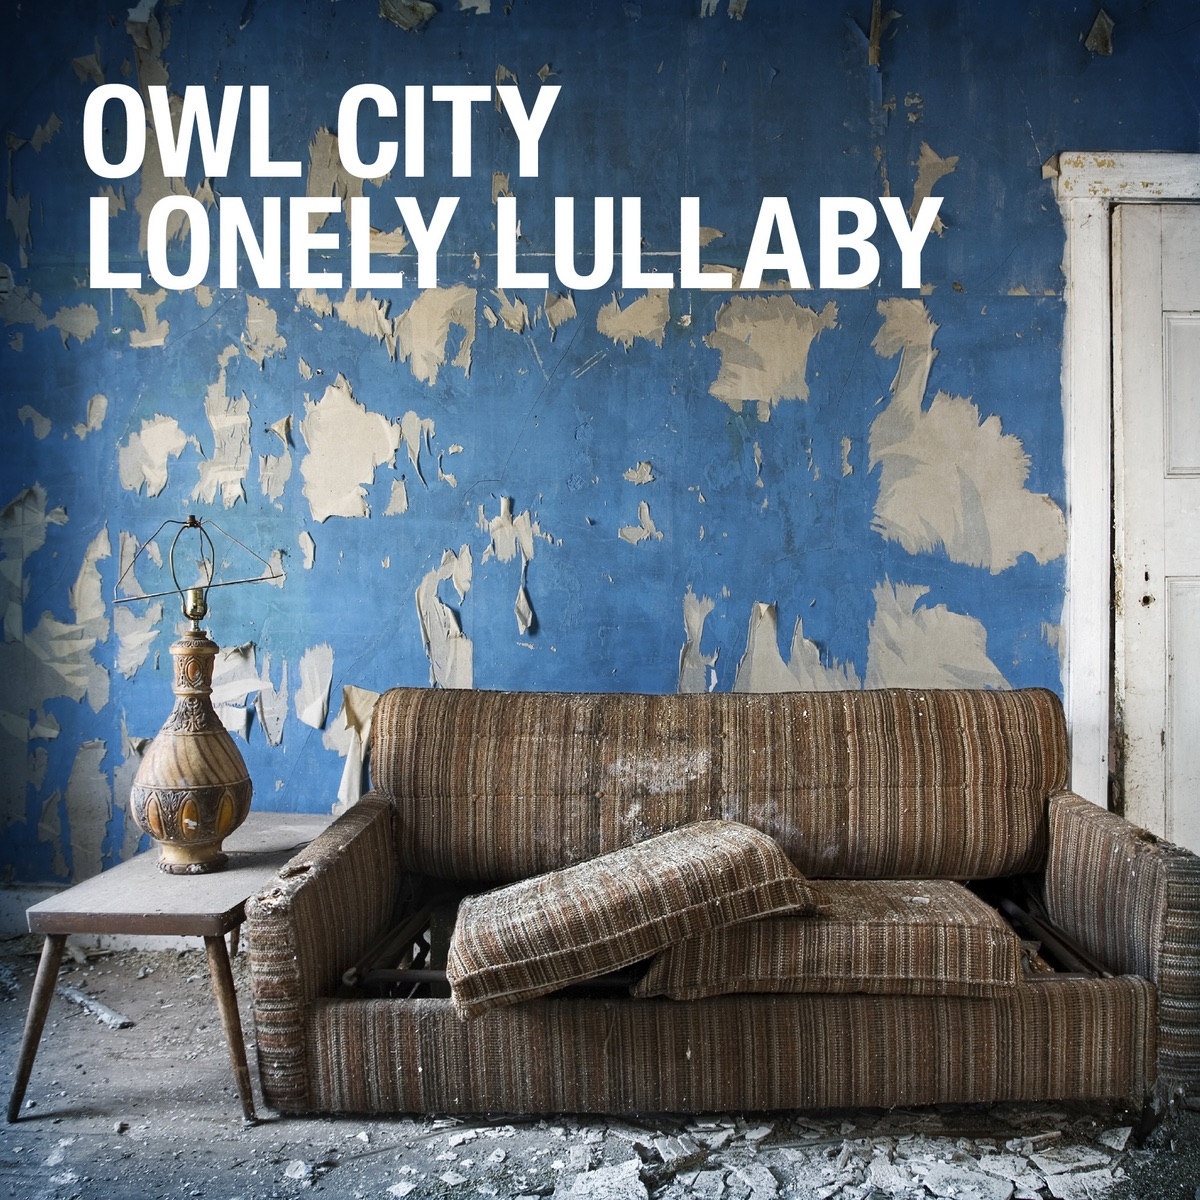 Lonely Lullaby - Single Album Cover by Owl City